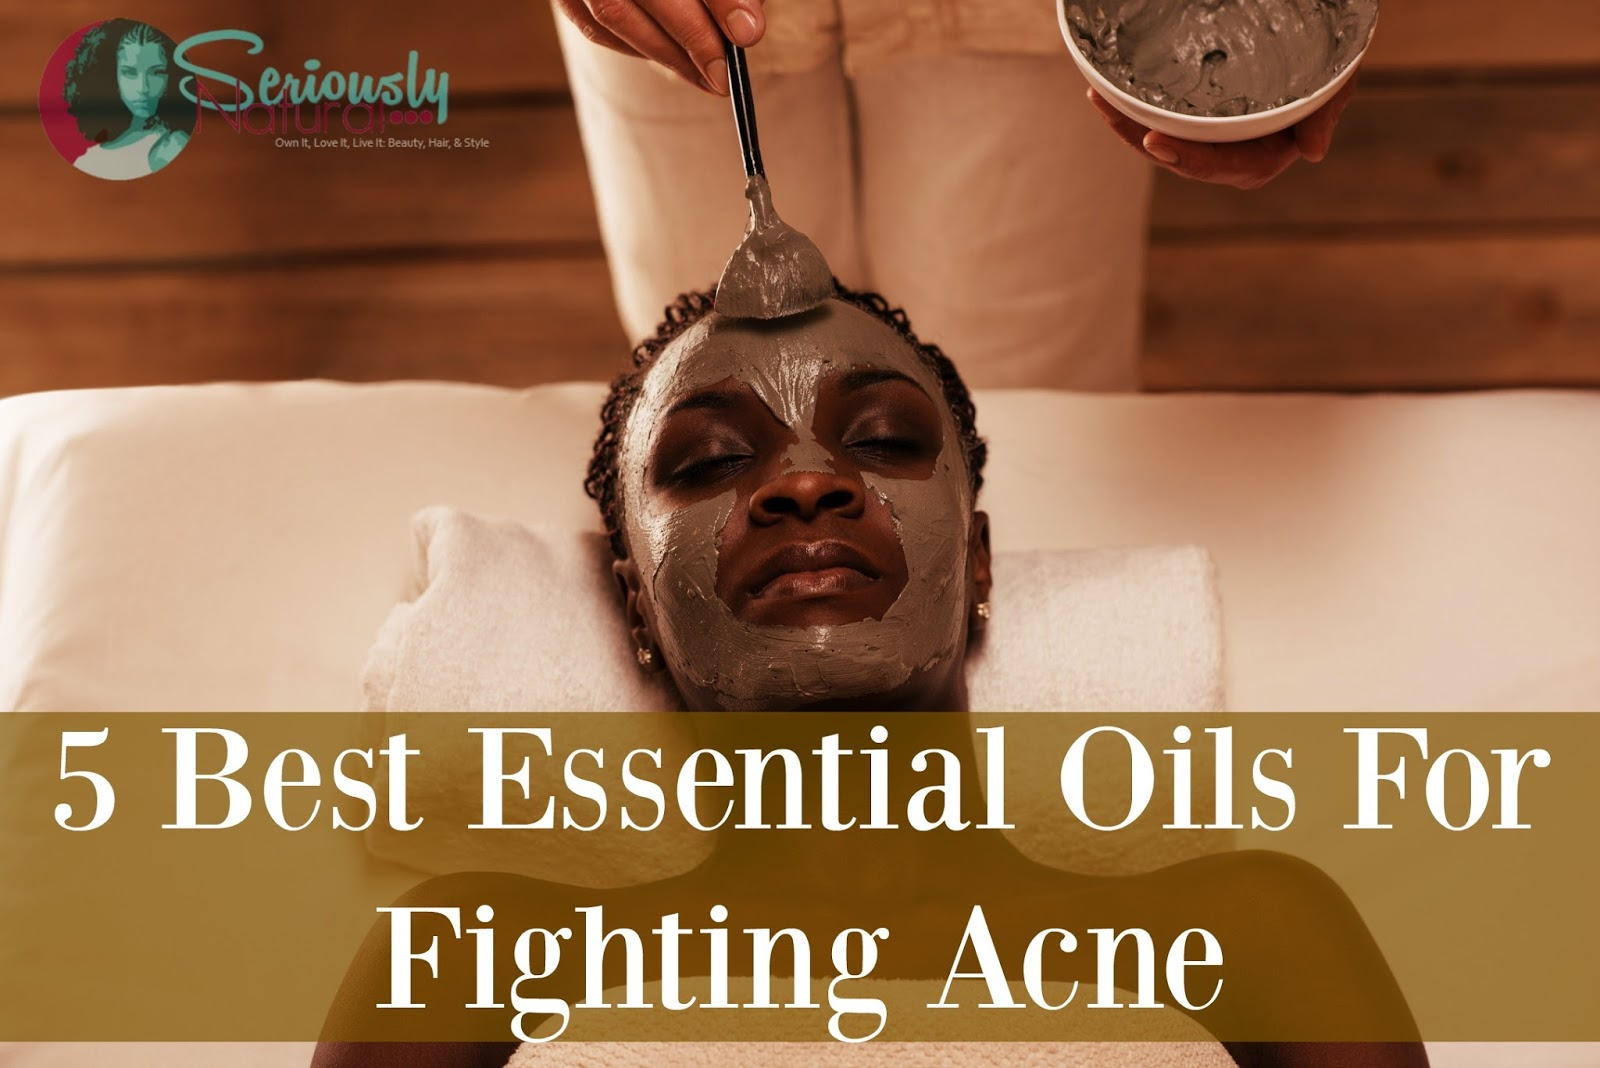 5 Best Essential Oils For Fighting Acne